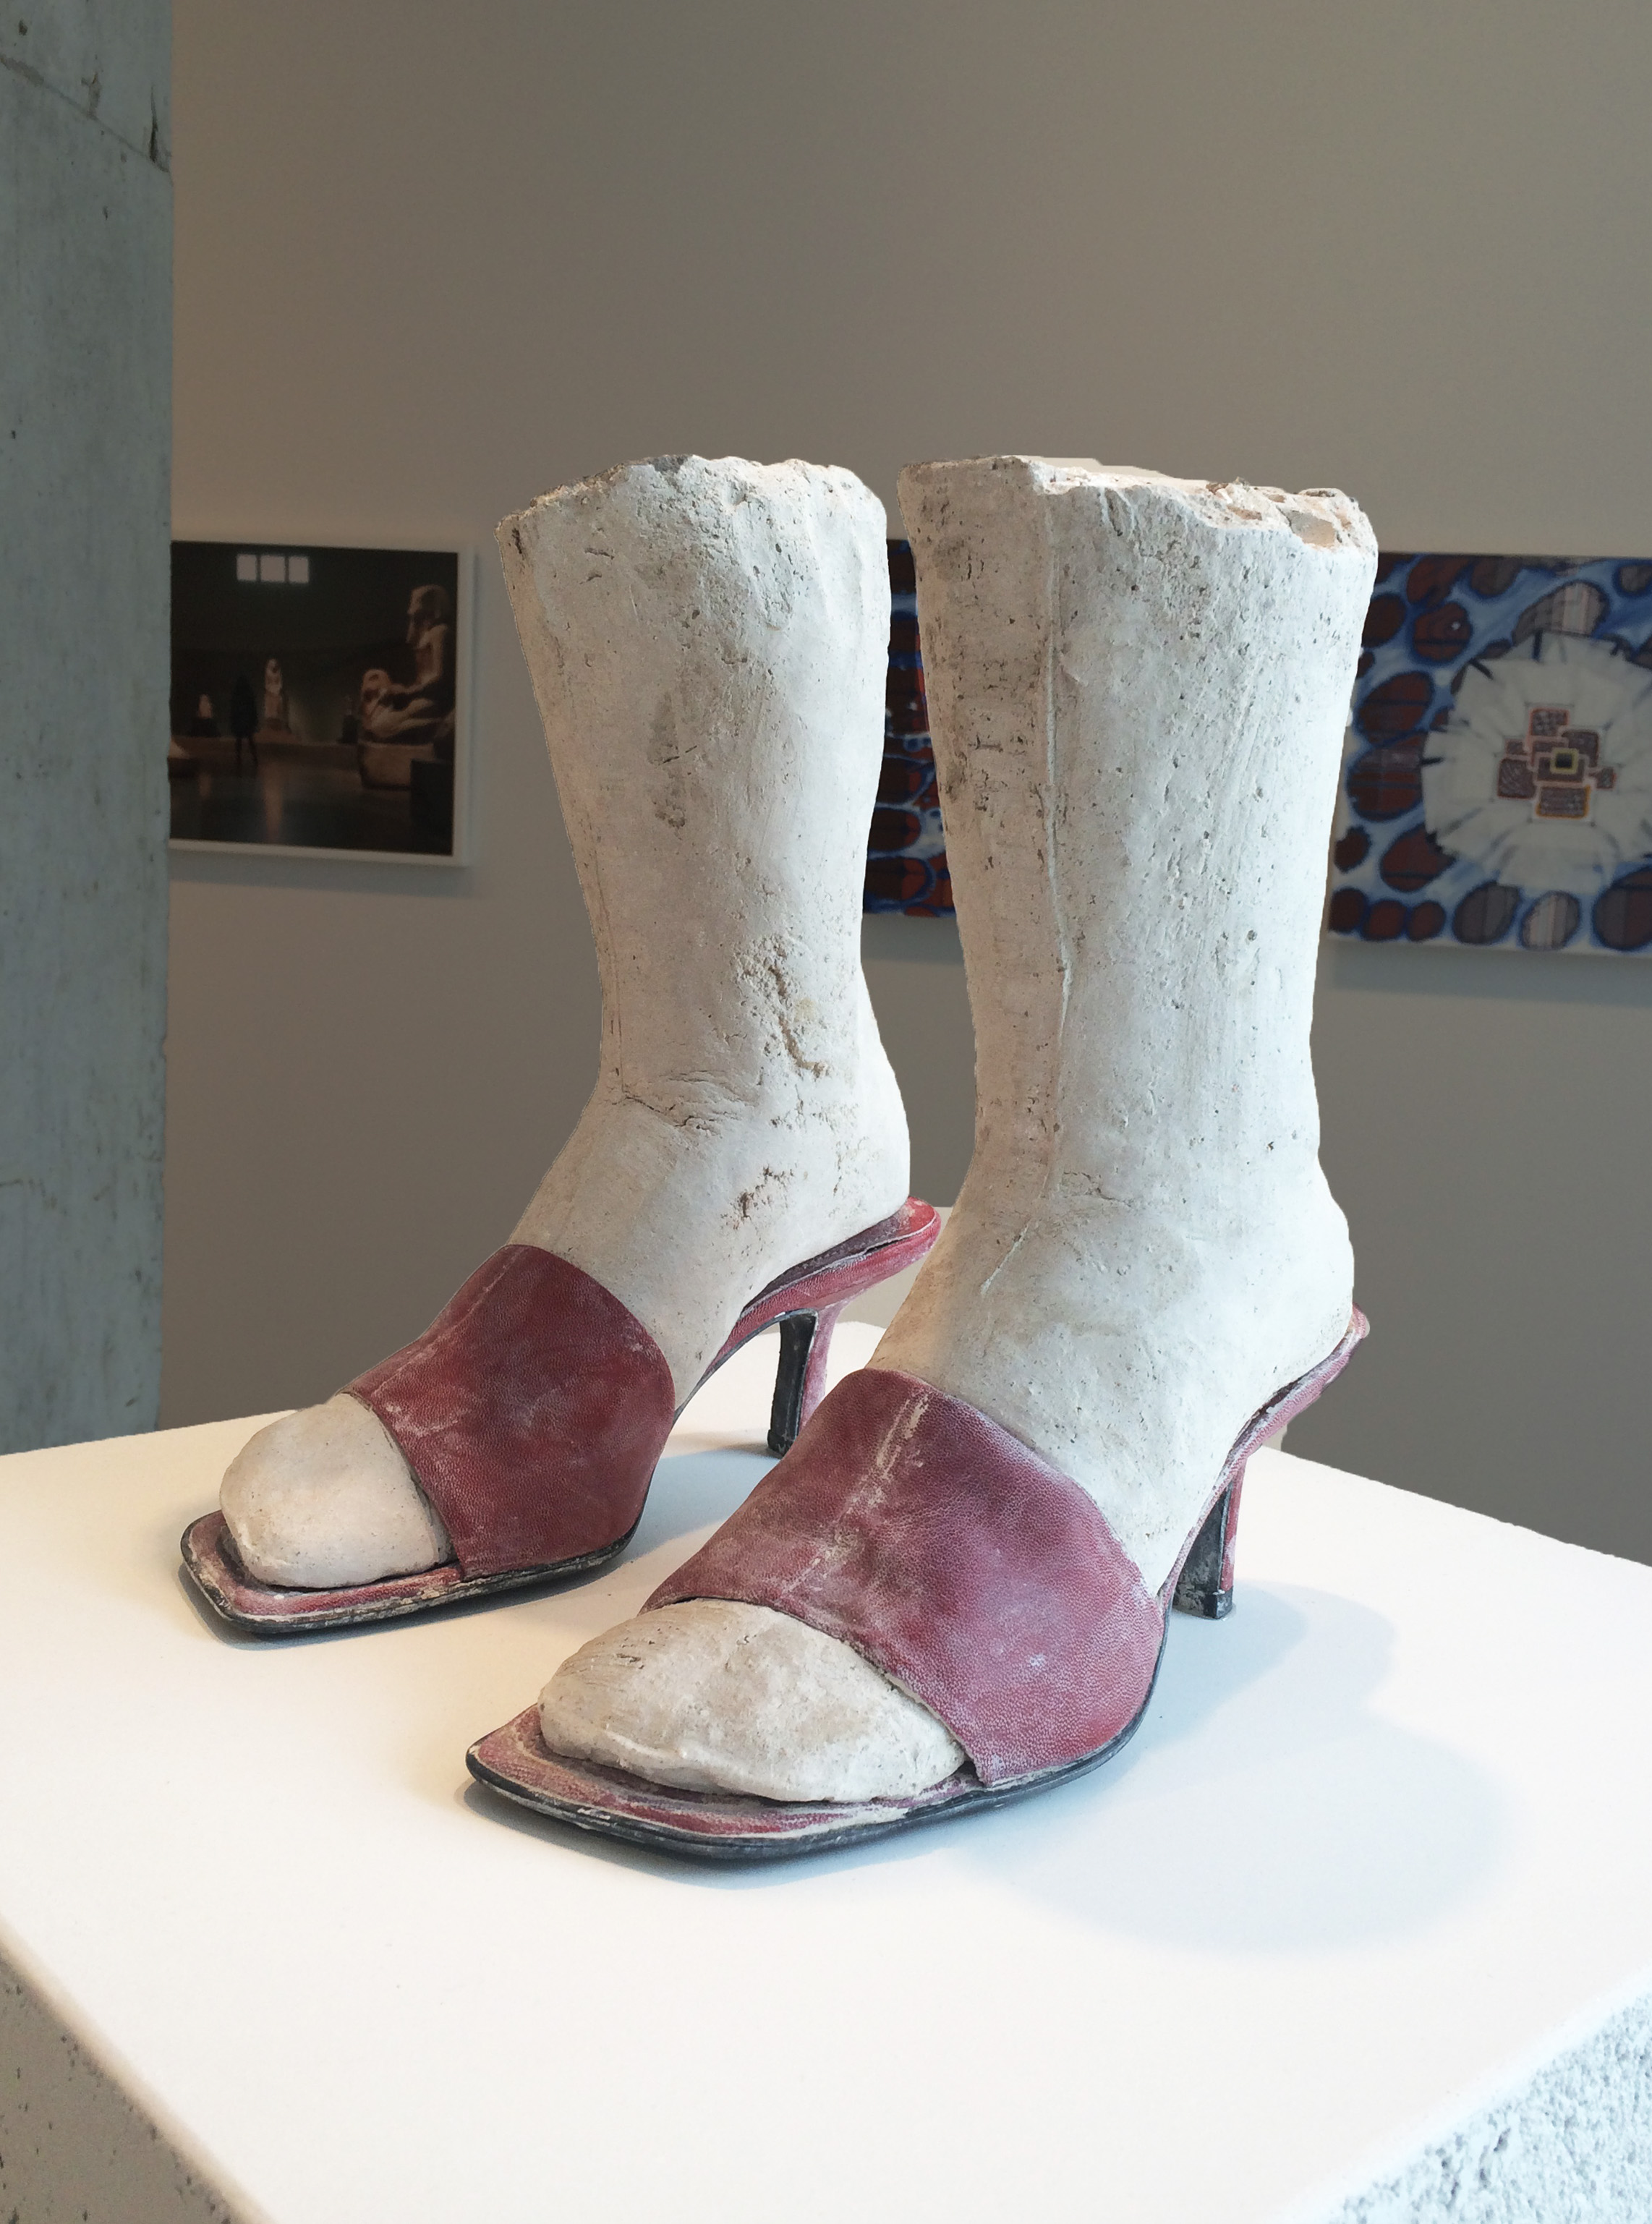 Ashley Lyon   Choir (red), 2010-2014 unfired clay, plaster, shoes 12 x 12 x 12 inches